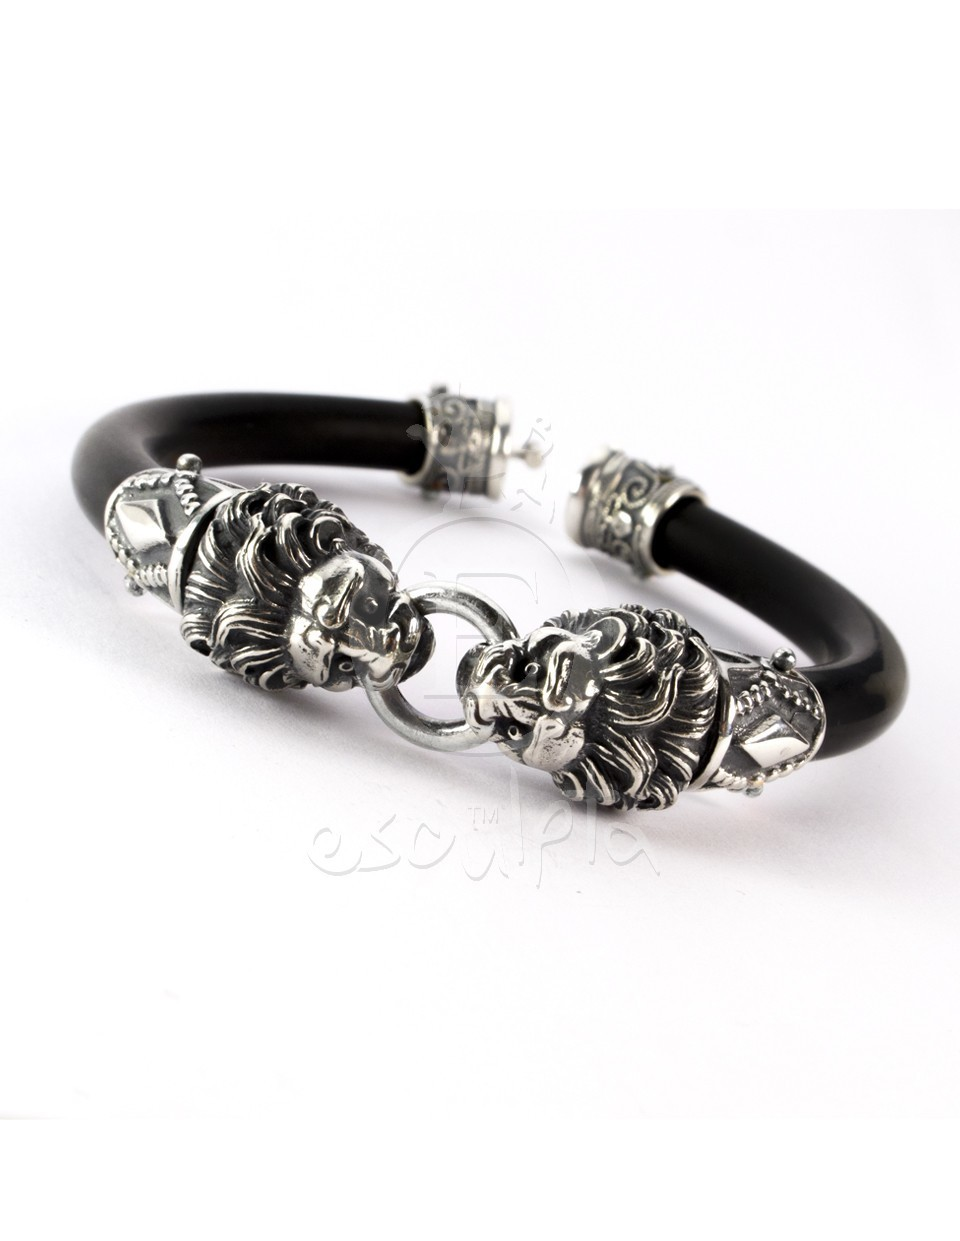 Winterland Silver Snowflake Bracelet, Violet Extension Bracelet, Essenzia Black Types: Rings, Bracelets, Lockets, Love Charms.